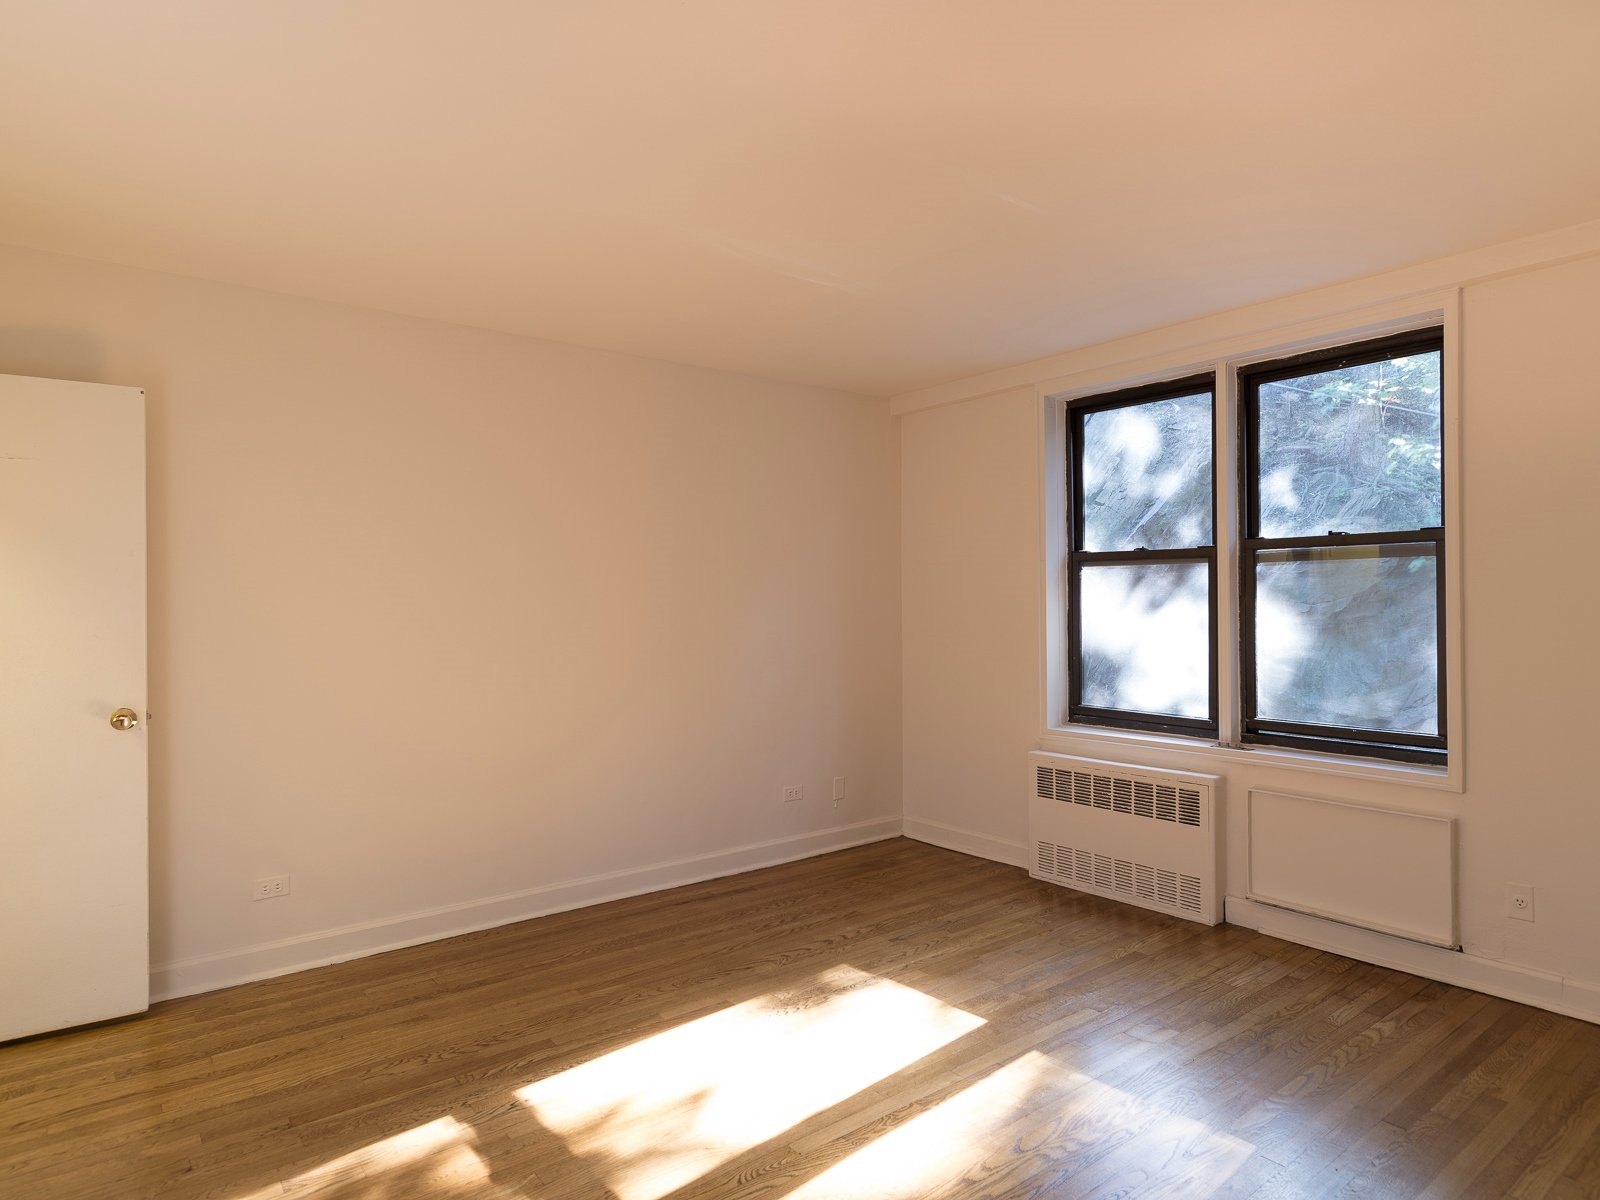 Co-op for Sale at Beautiful and Renovated 1 BR 5235 Post Road 2C Riverdale, New York, 10471 United States